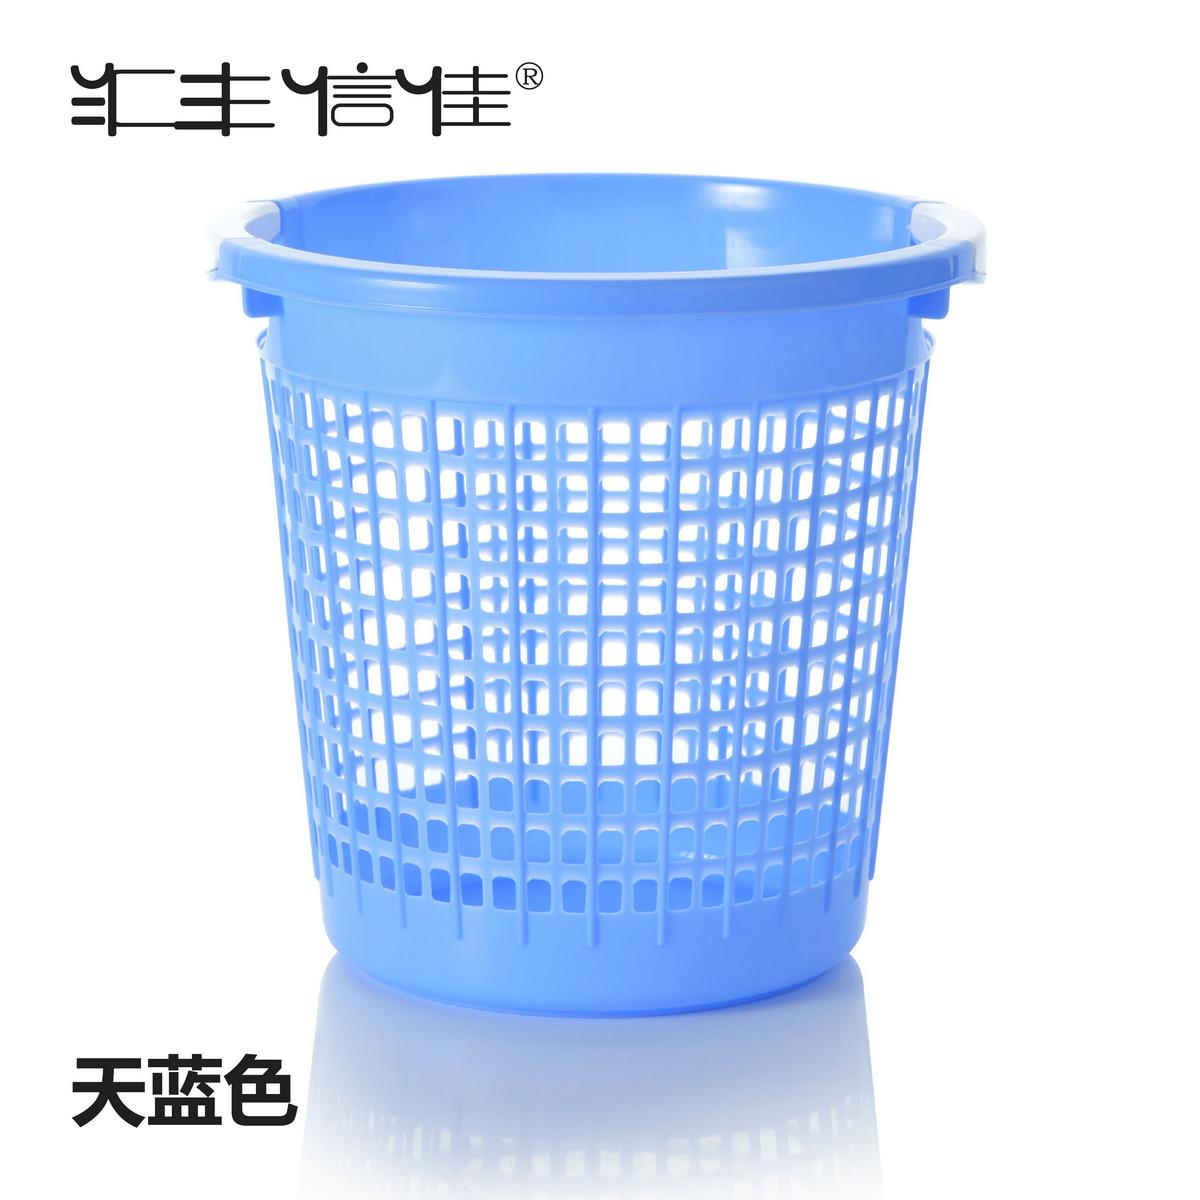 H.fine xin jia Household Hollow out New Cylindrical with Armrests Plastic zhi luo Toilet Pail Garbage Can